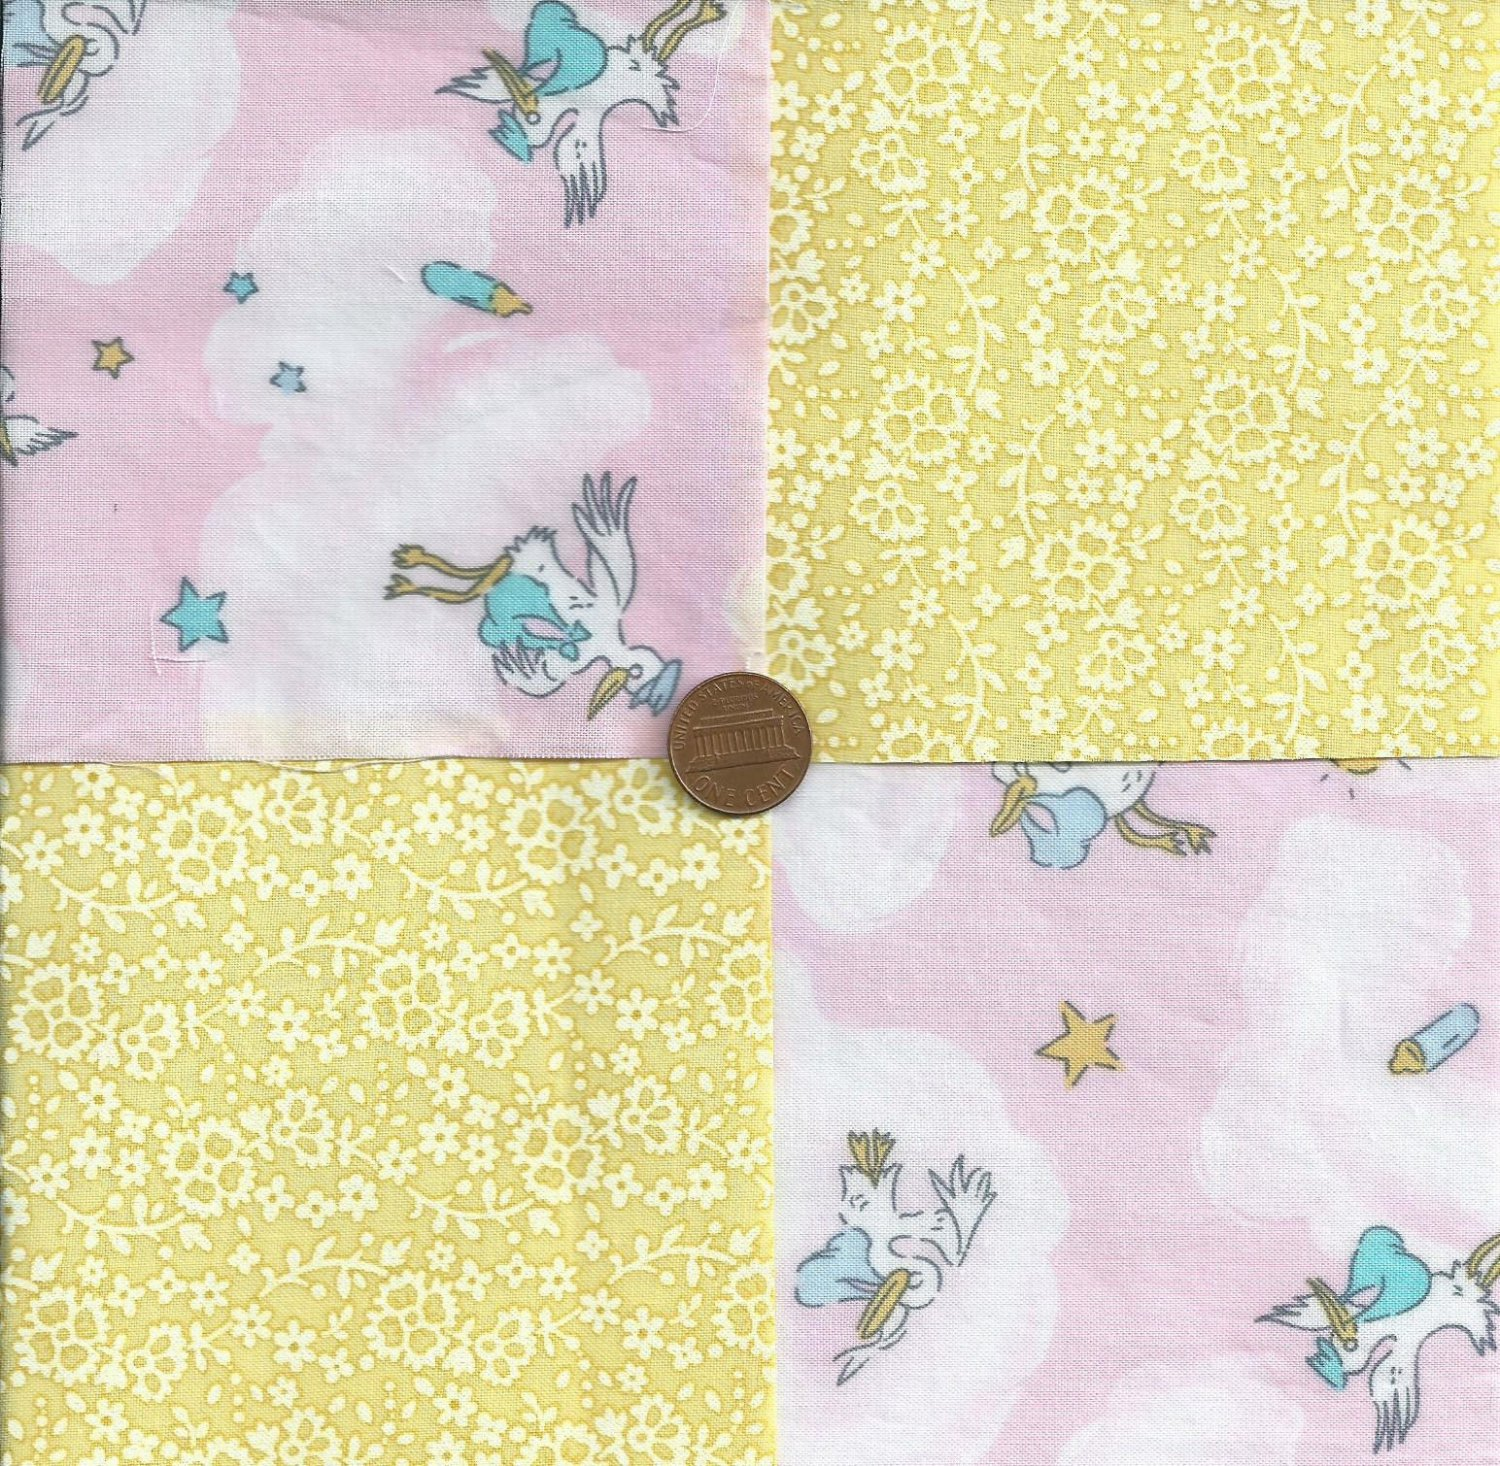 Stork welcome baby girl transgender unisex fabric squares for Unisex baby fabric